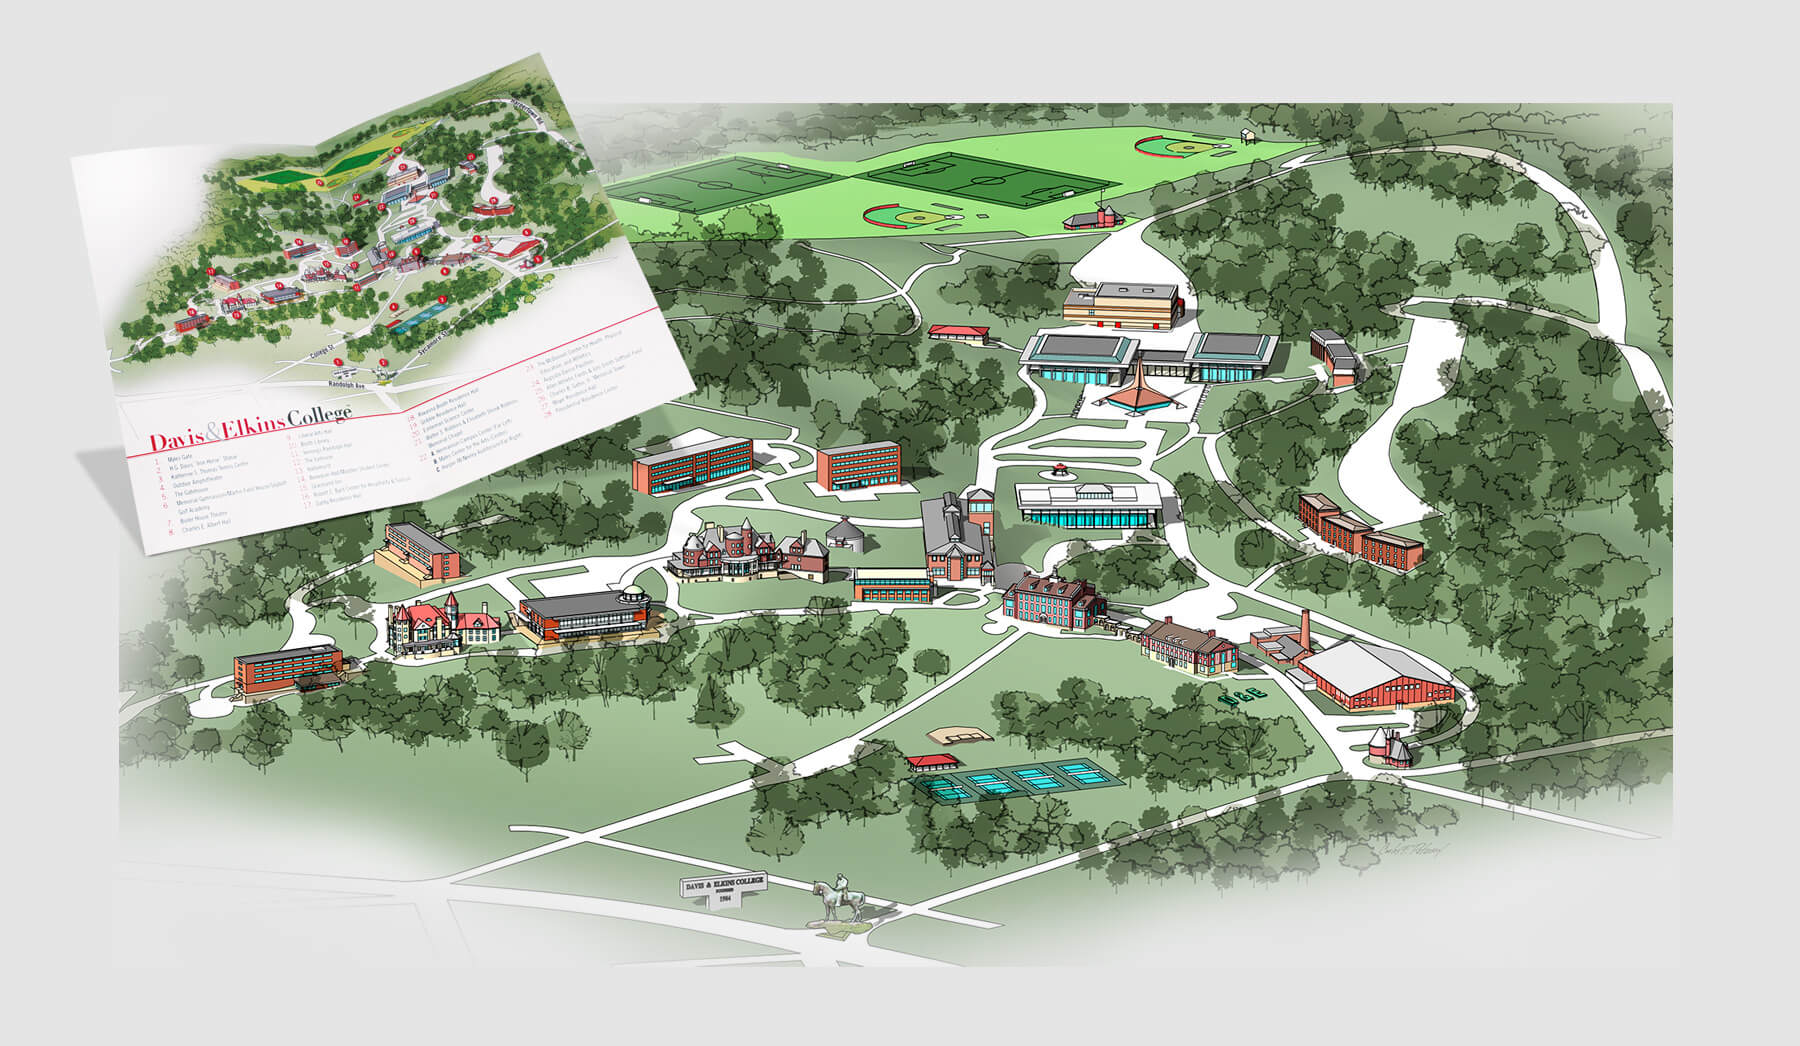 Campus map illustration and brochure design